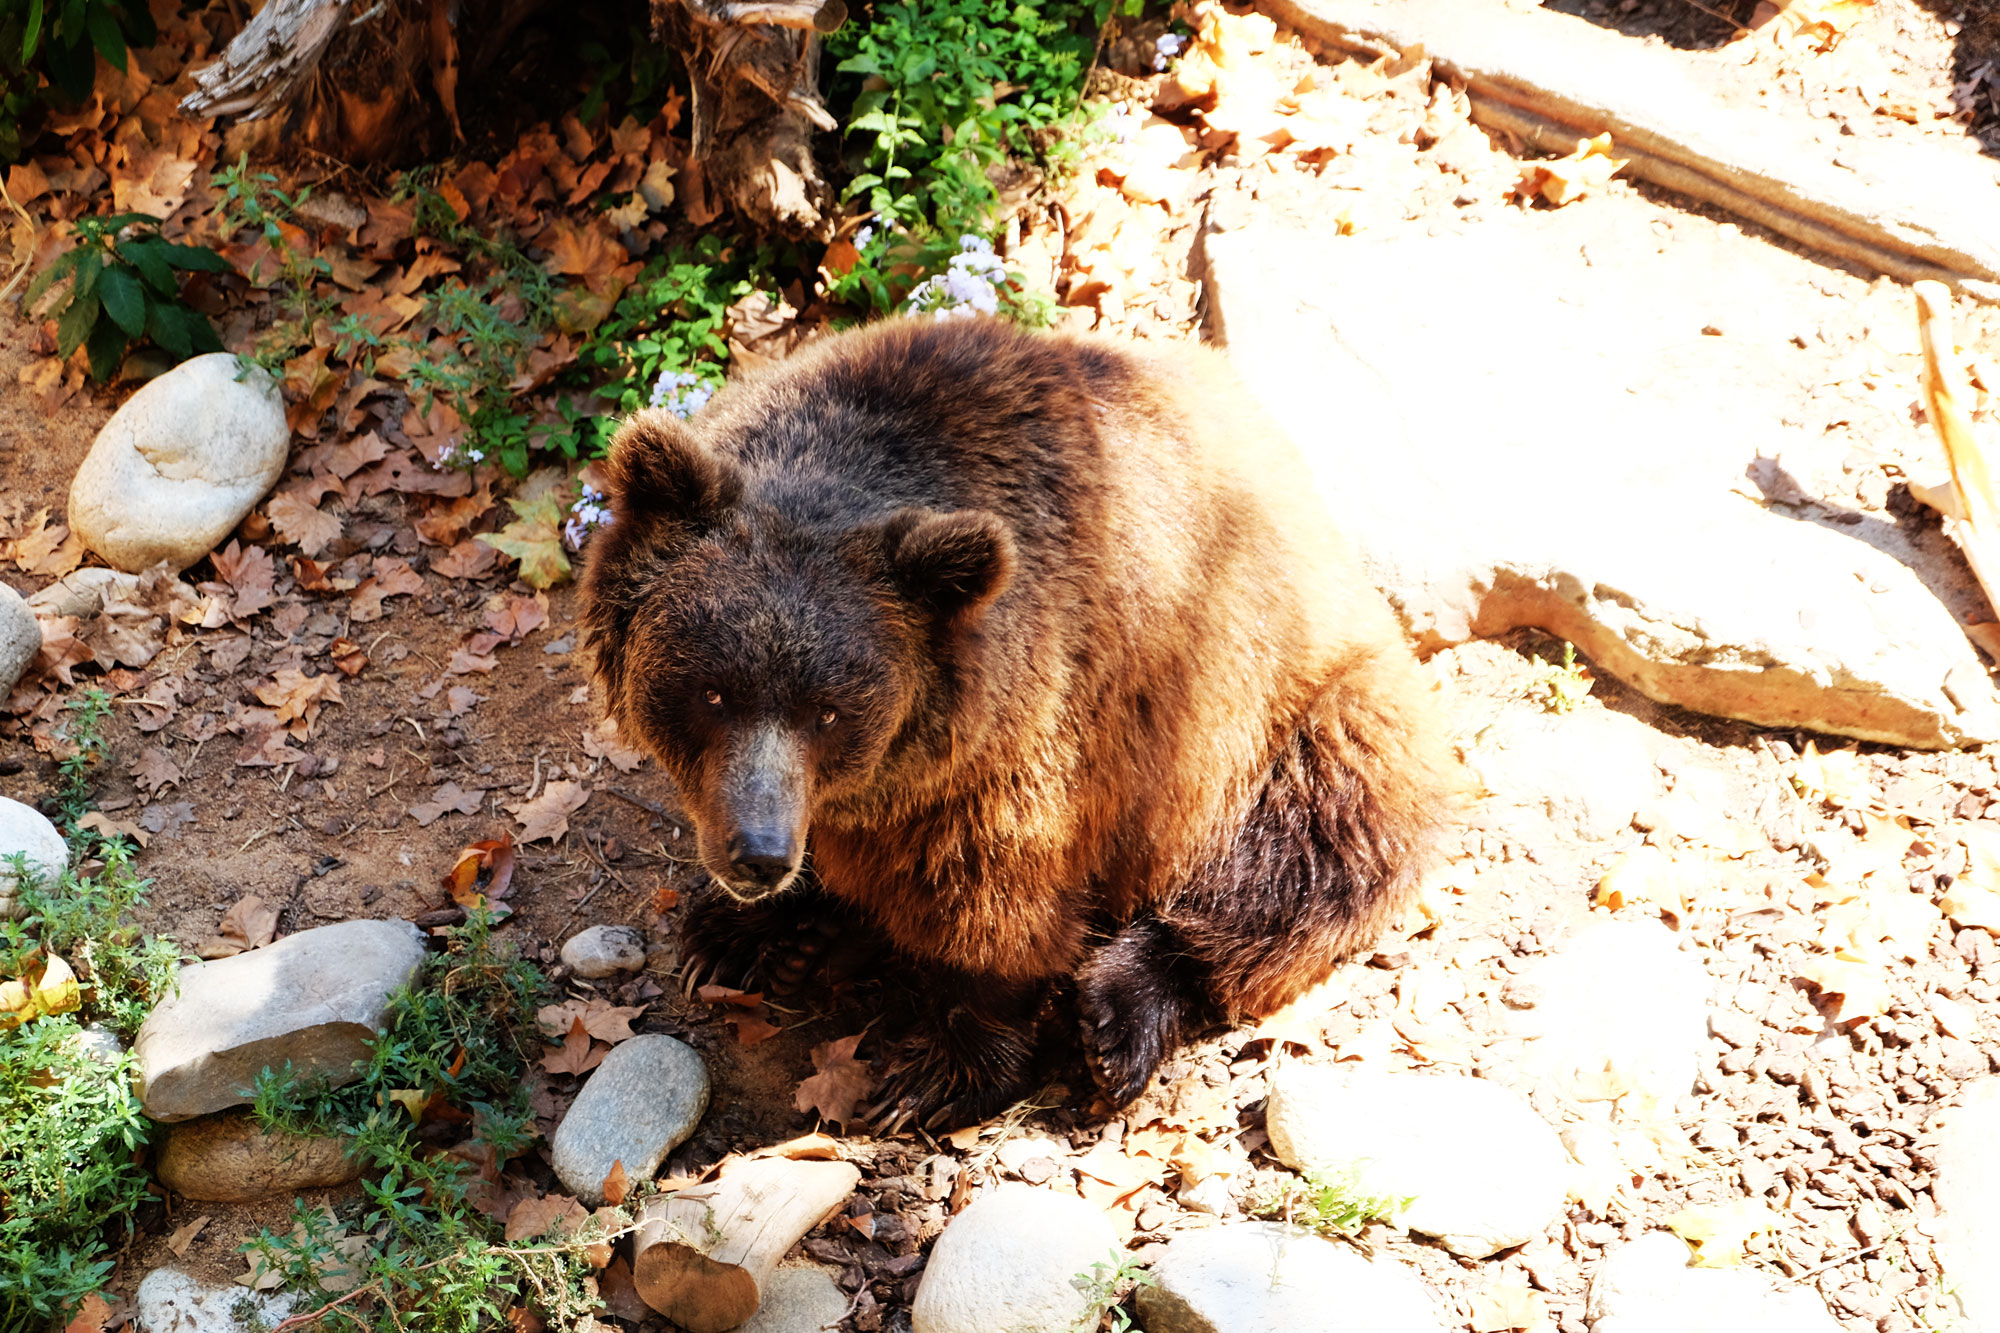 zoo-barcellona-orso-bruno